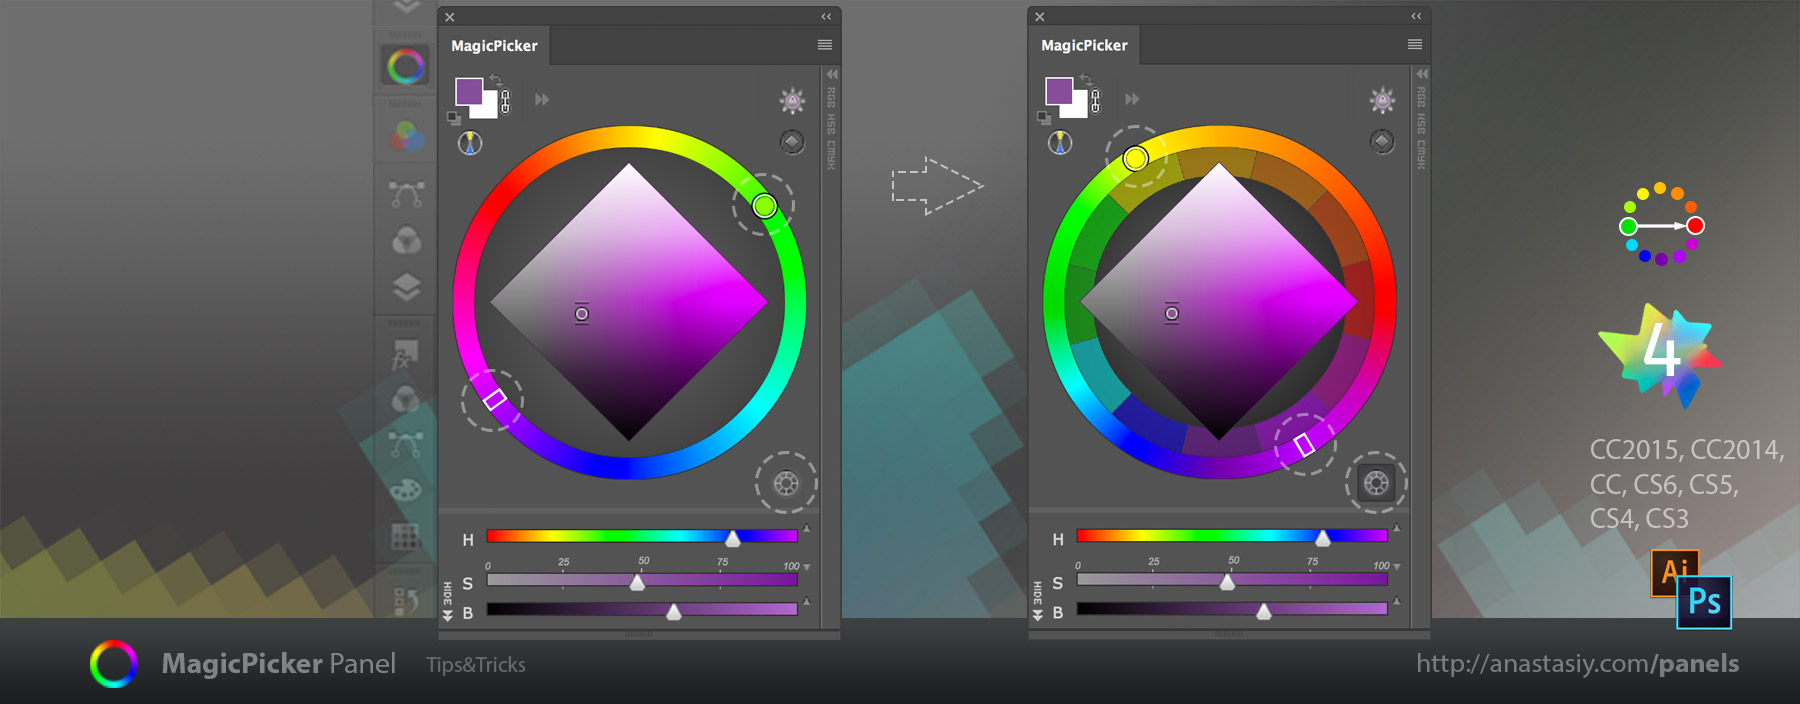 MagicPicker - switch to traditional color wheel